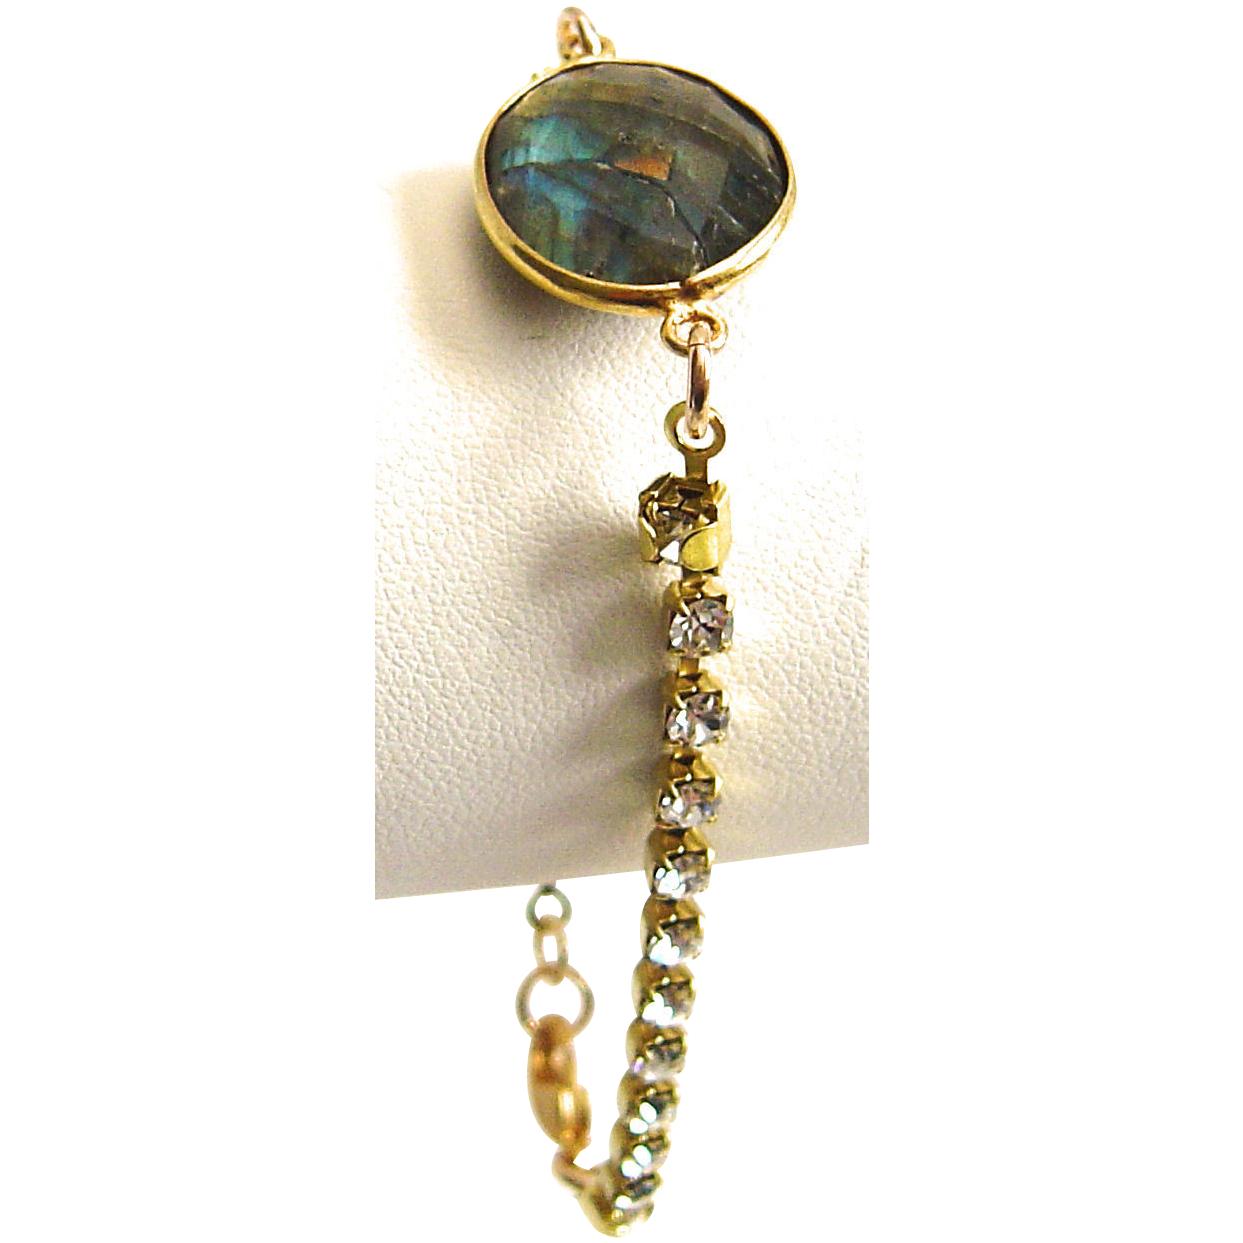 Designs by Ali Labradorite Connector with Czech Crystal Brass Rhinestone Chain Bracelet